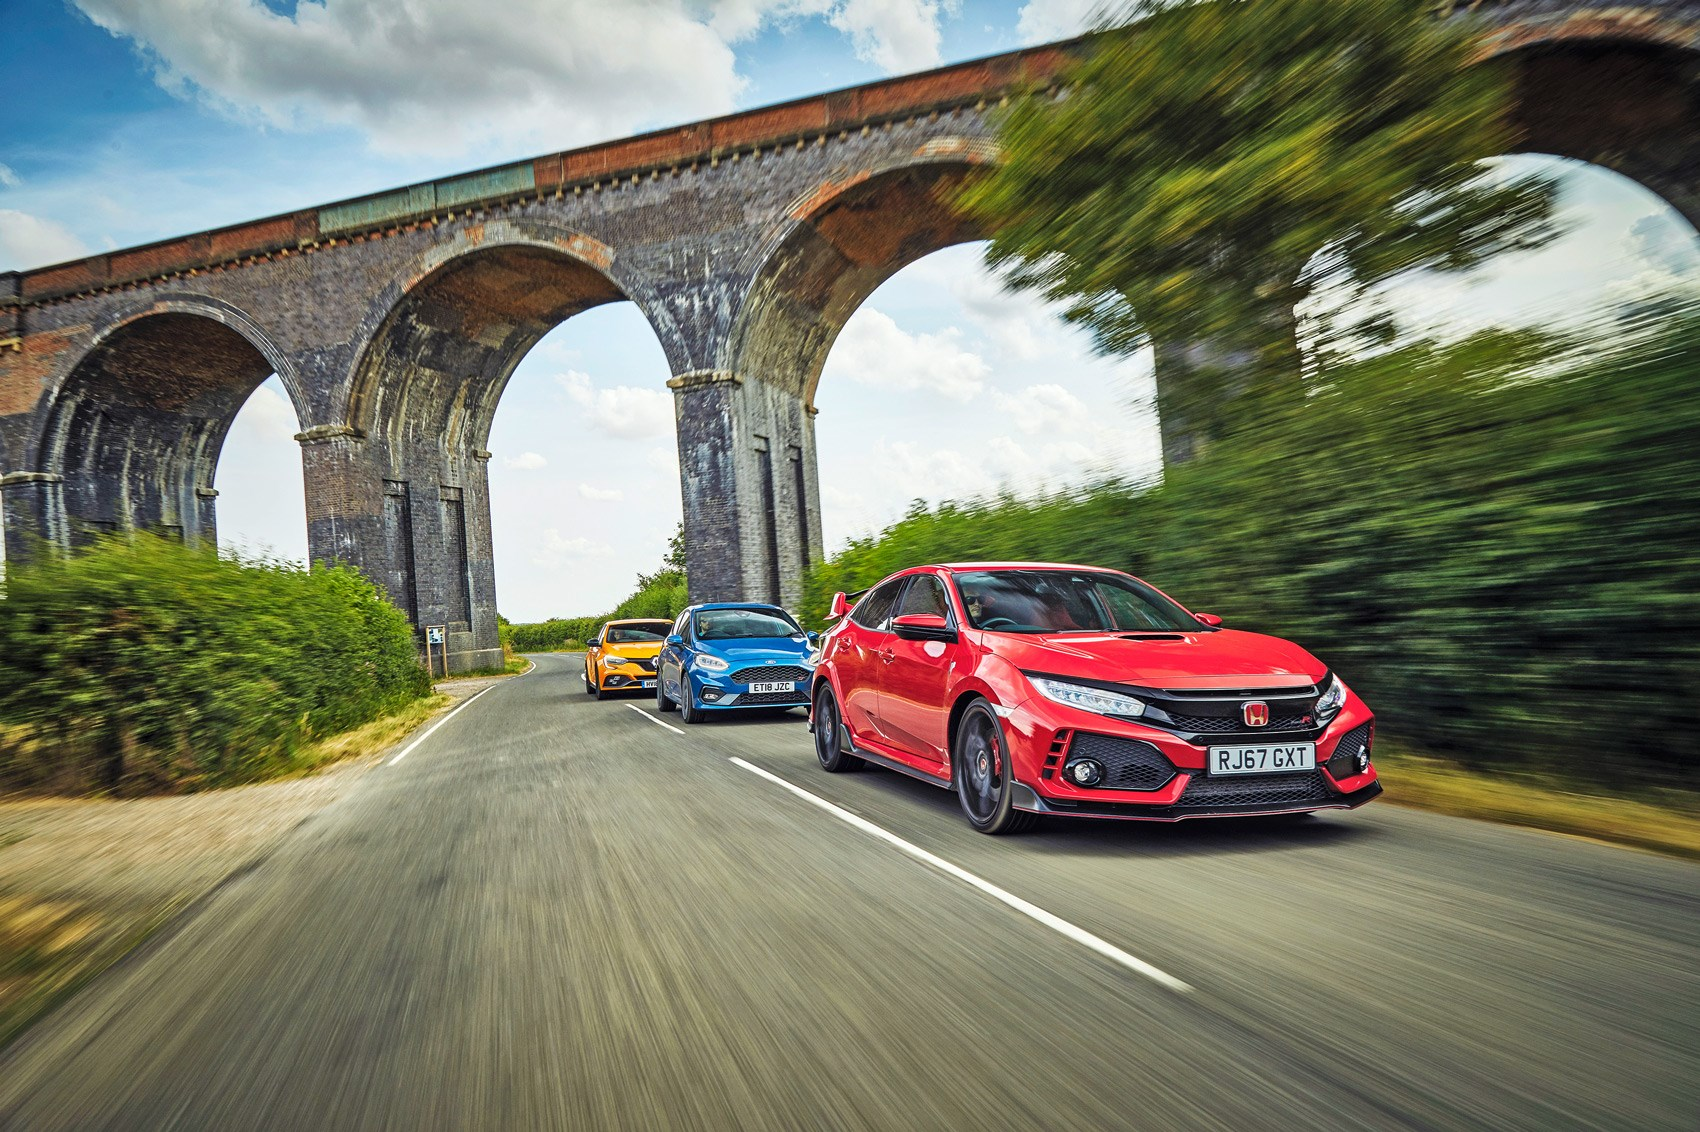 Megane RS Cup vs Civic Type R vs Fiesta ST triple test review | CAR